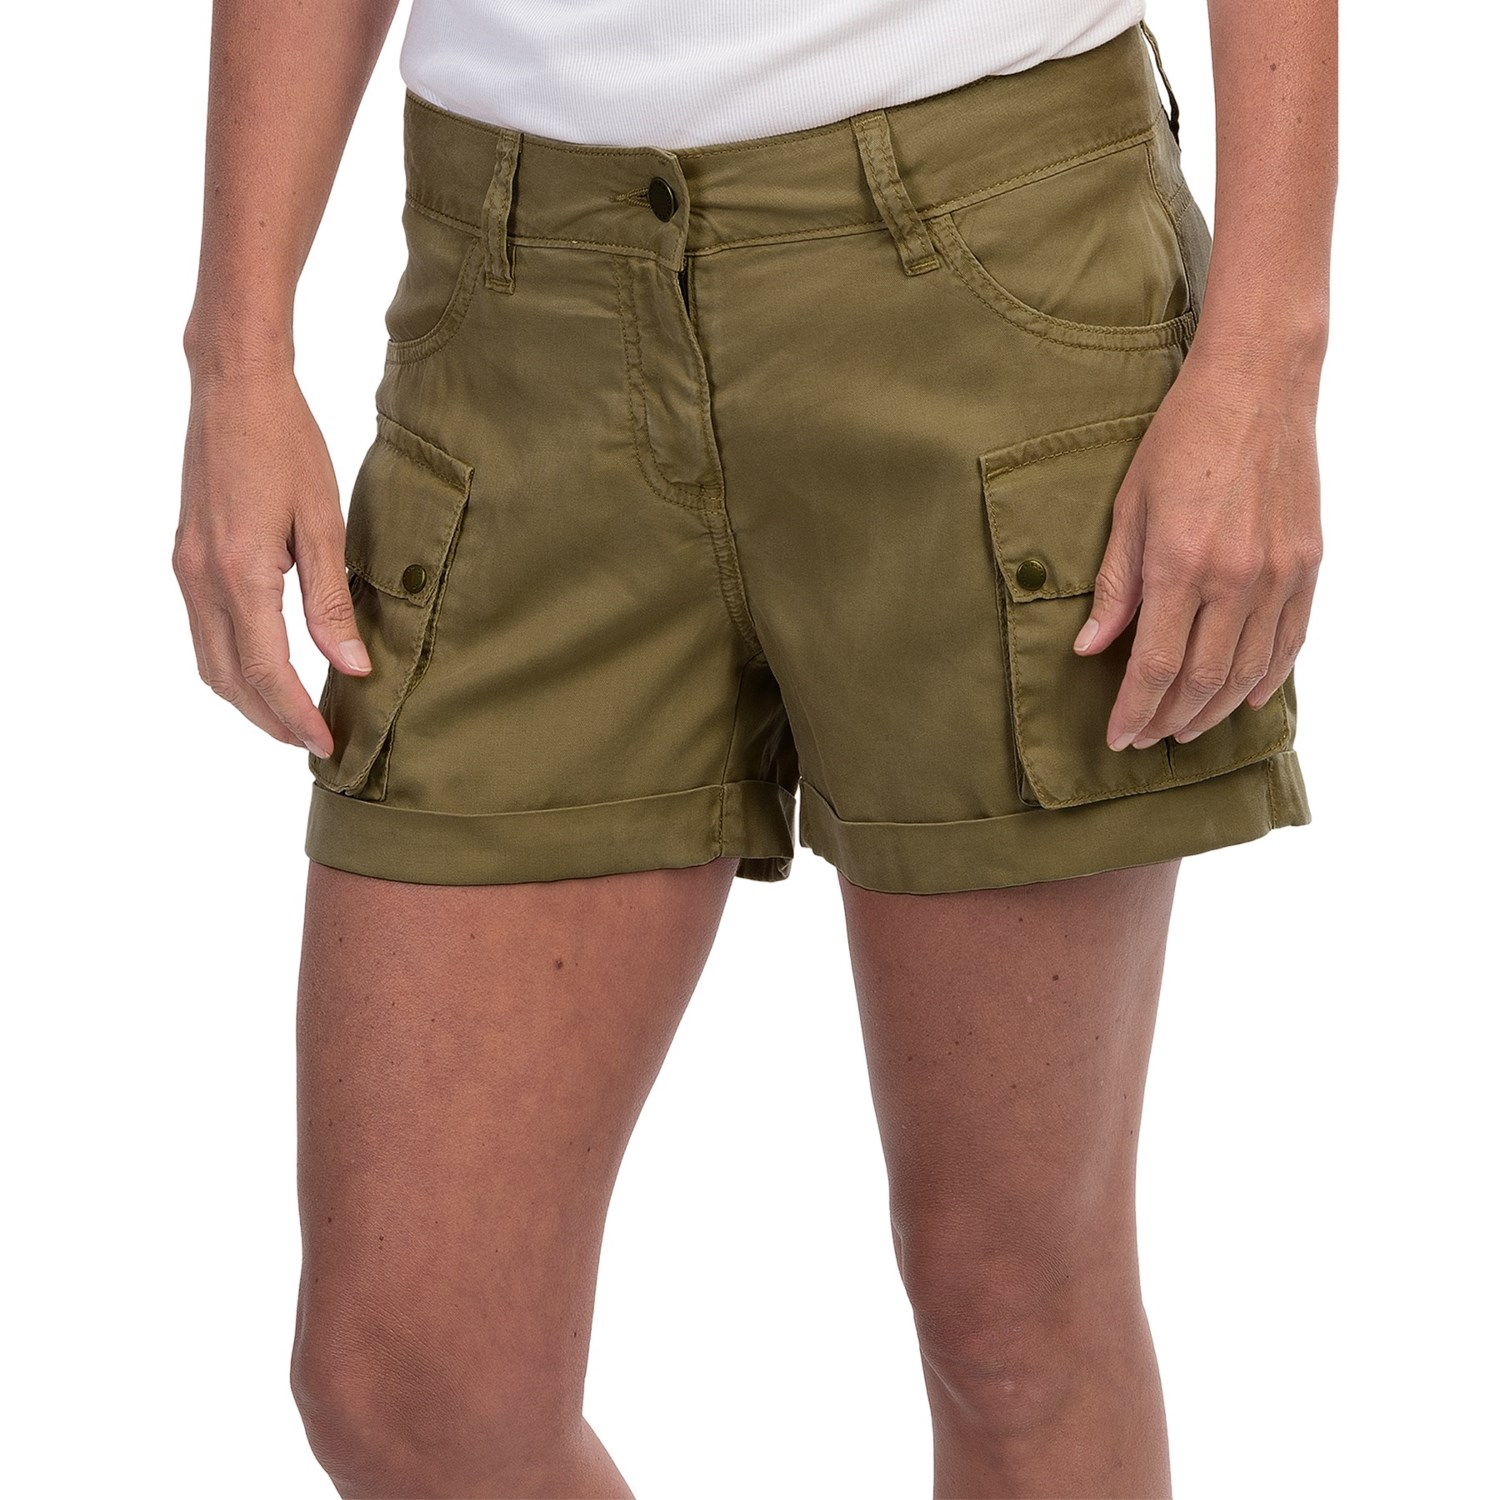 Or if you want to infuse your khaki collection (and if you don't have one, start one) with some utilitarian edge (one of our biggest influences), we've got just you need. With durable construction and classic military styling, our cargo shorts for men are up to the task.